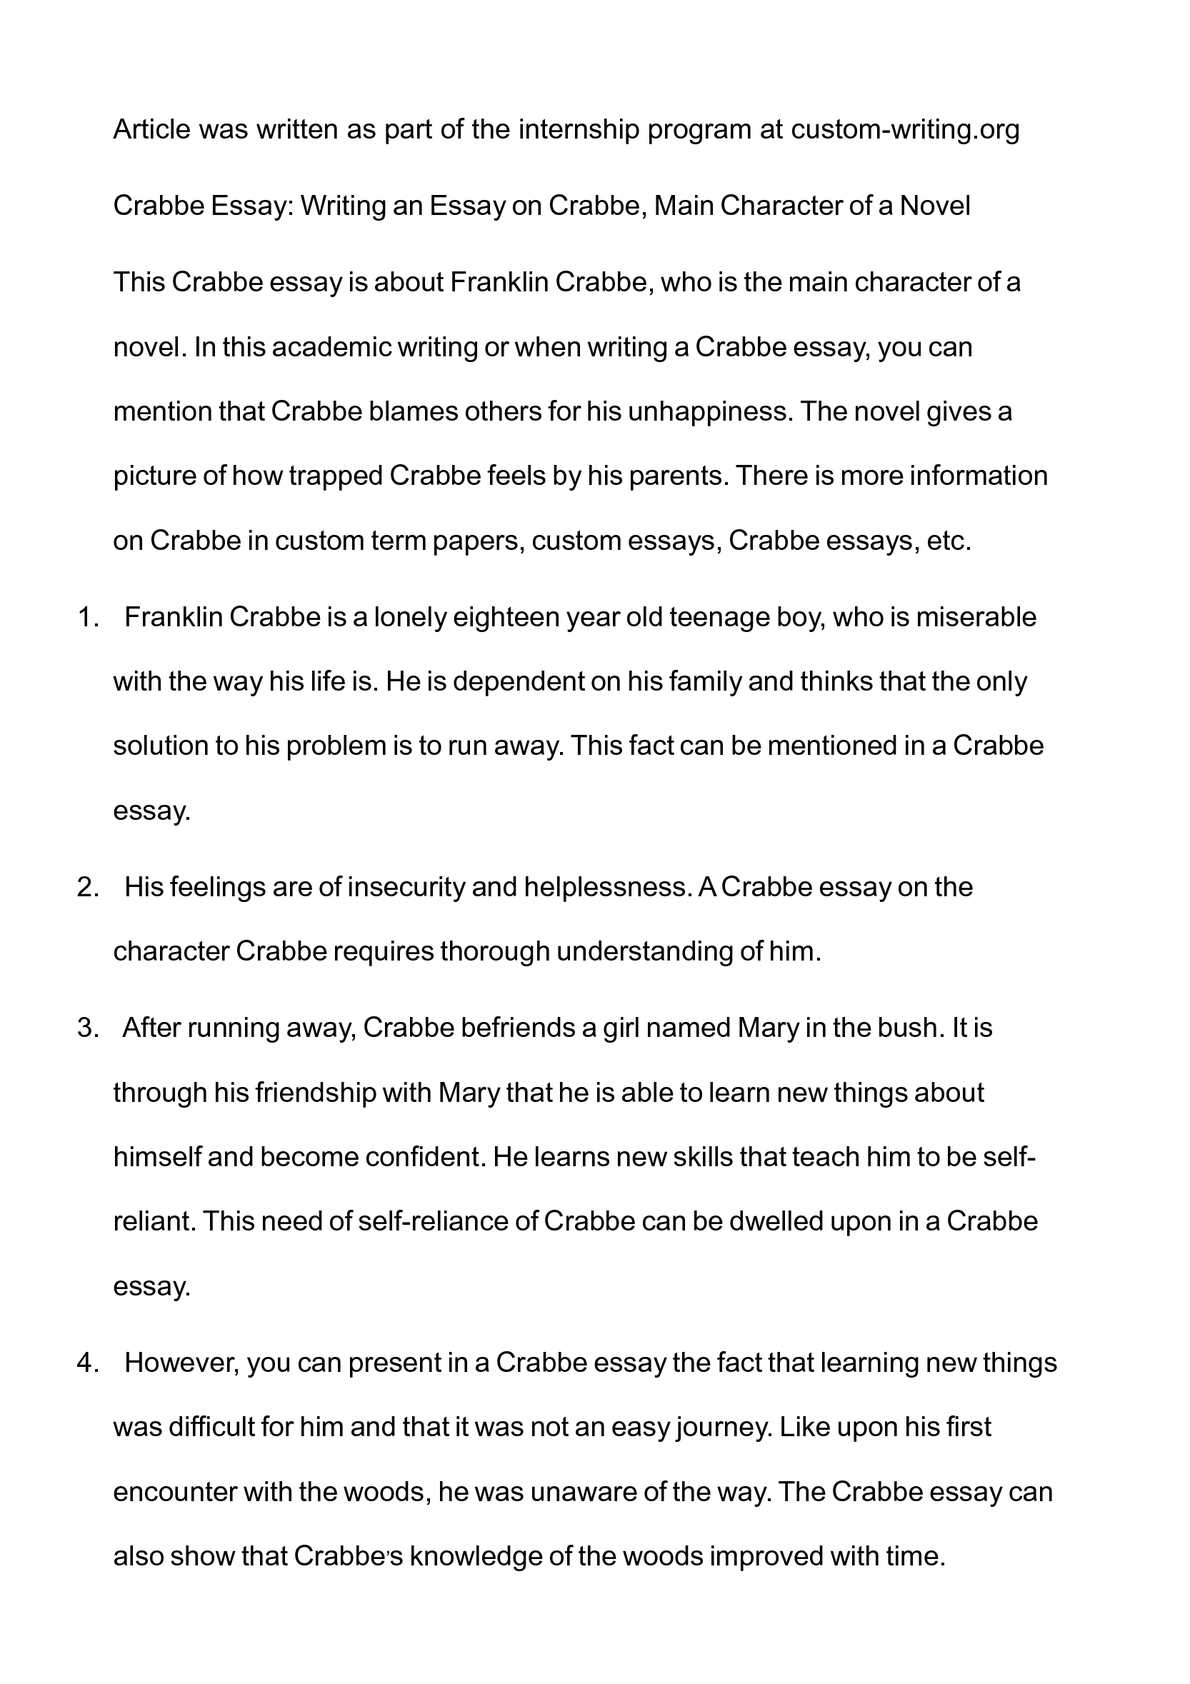 crabbe essay calam atilde acirc copy o crabbe essay writing an essay on crabbe main calamatilde131acirccopyo crabbe essay writing an essay on crabbe main character calamatilde131acirccopyo crabbe